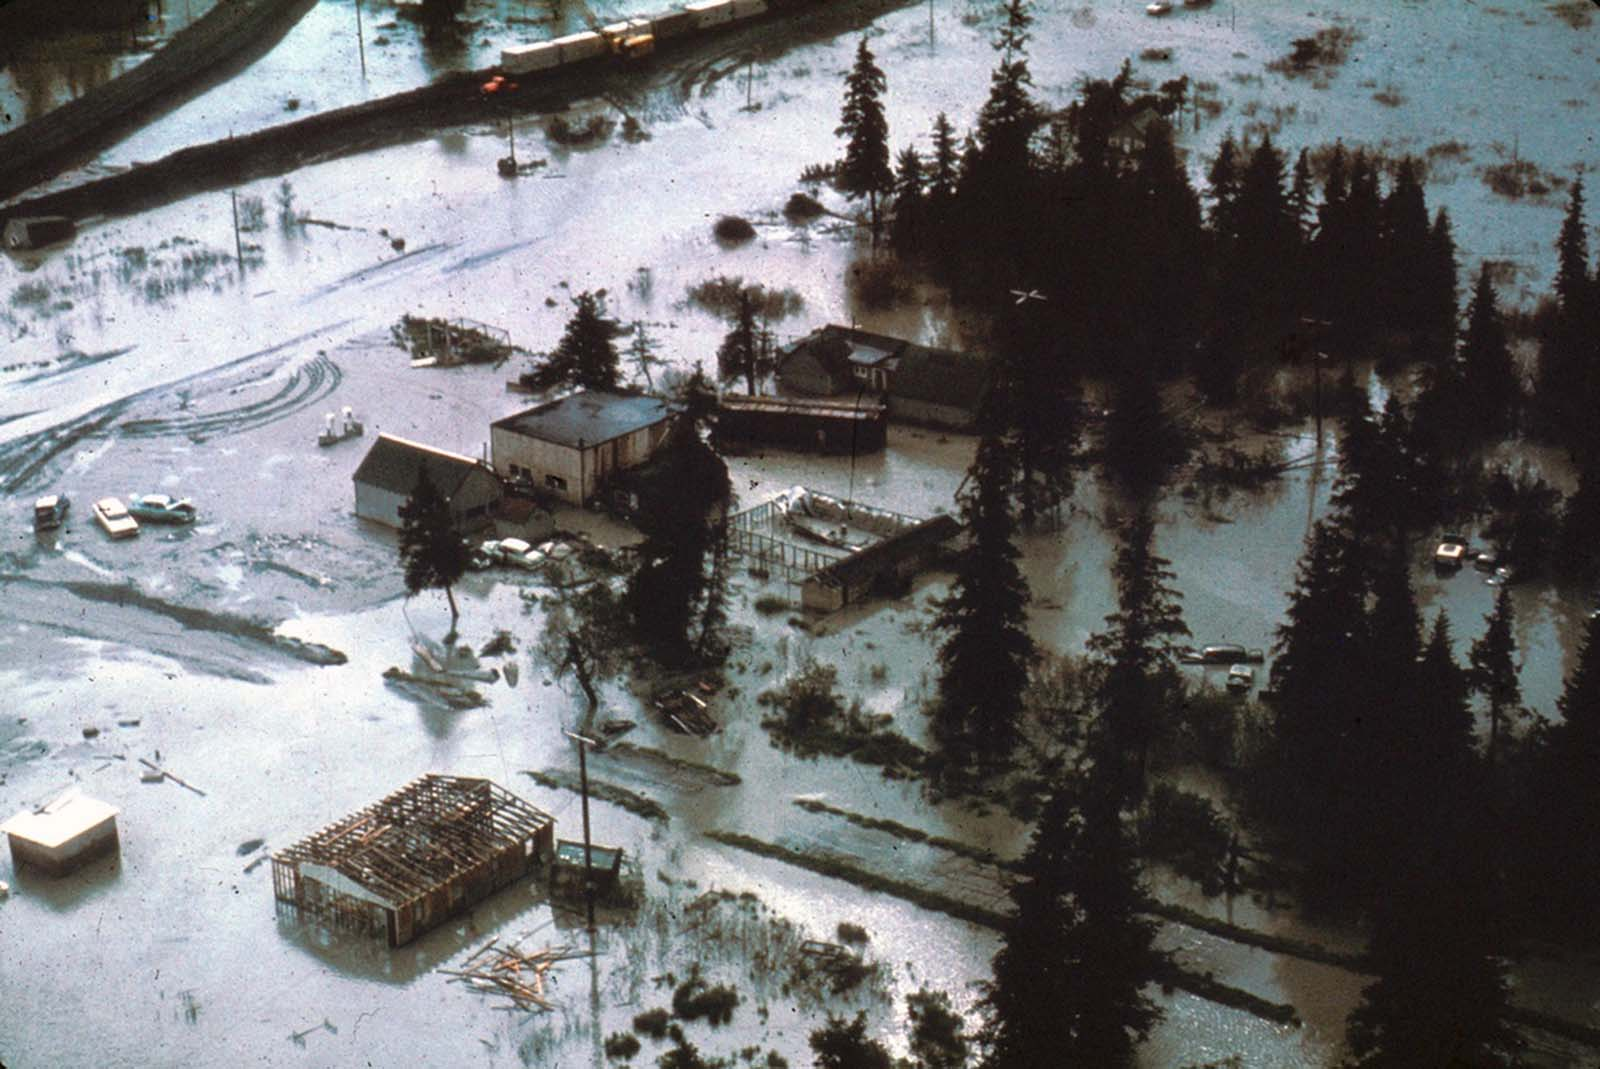 The village of Portage, at the head of Turnagain Arm, flooded at high tide as a result of 6 feet of tectonic subsidence during the earthquake.